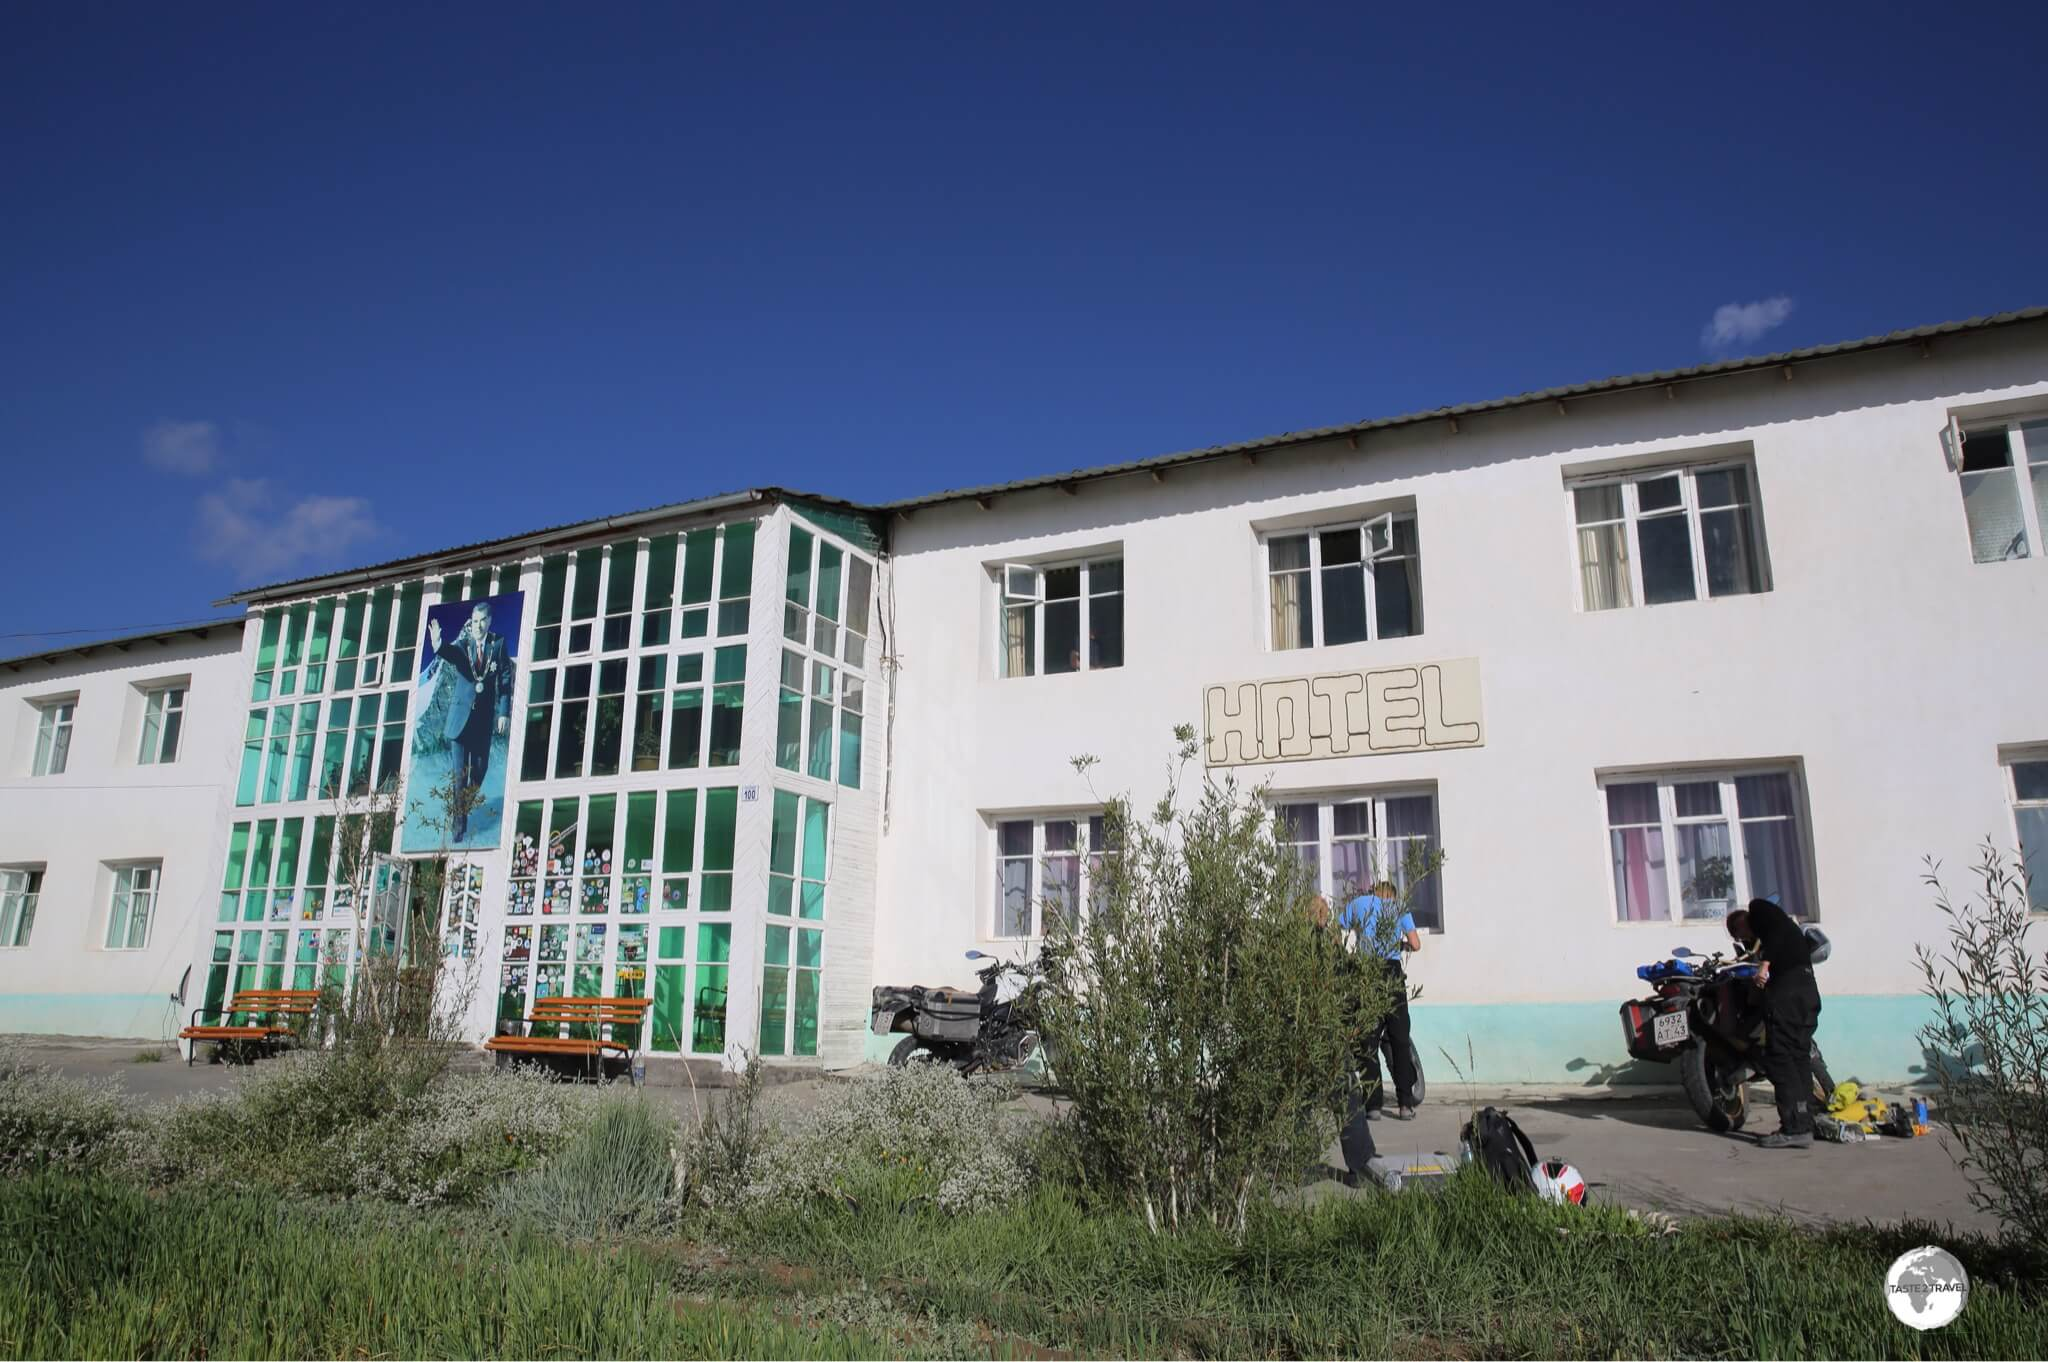 The Pamir hotel overlooks the remote town of Murgab.